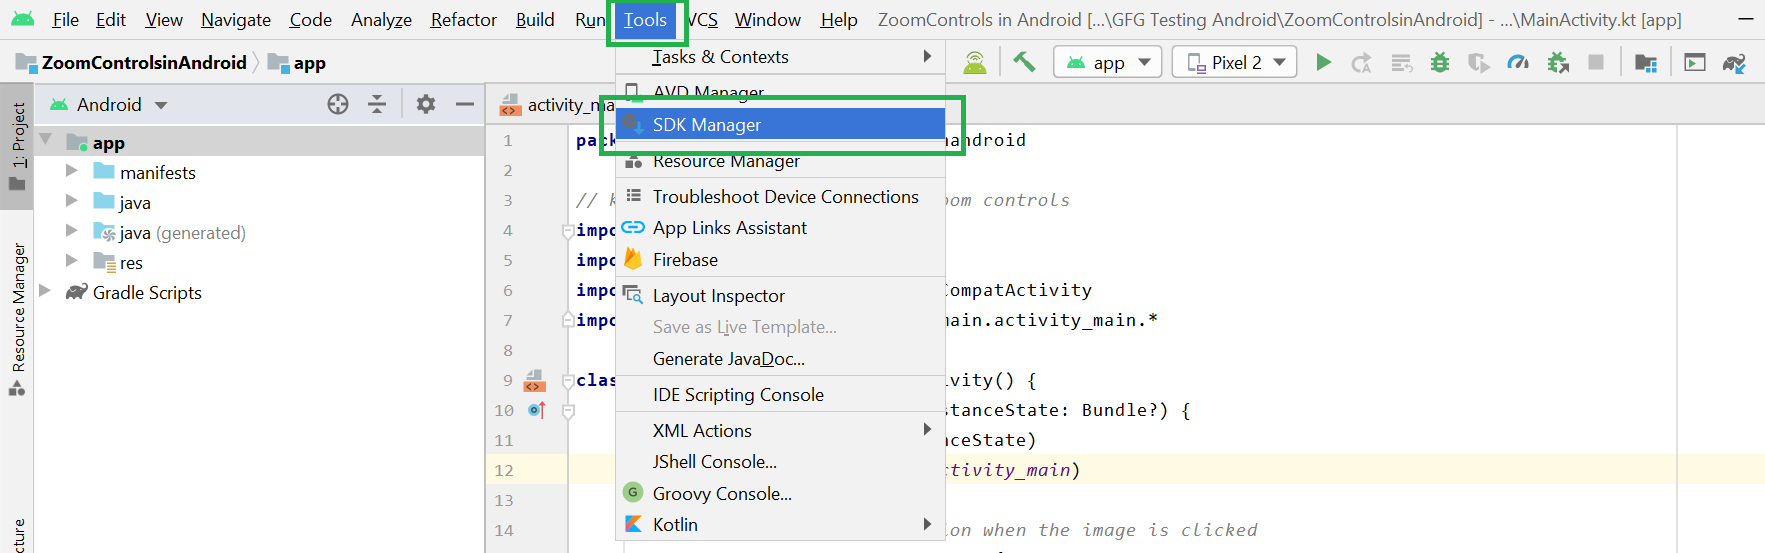 know the Android SDK path in your system